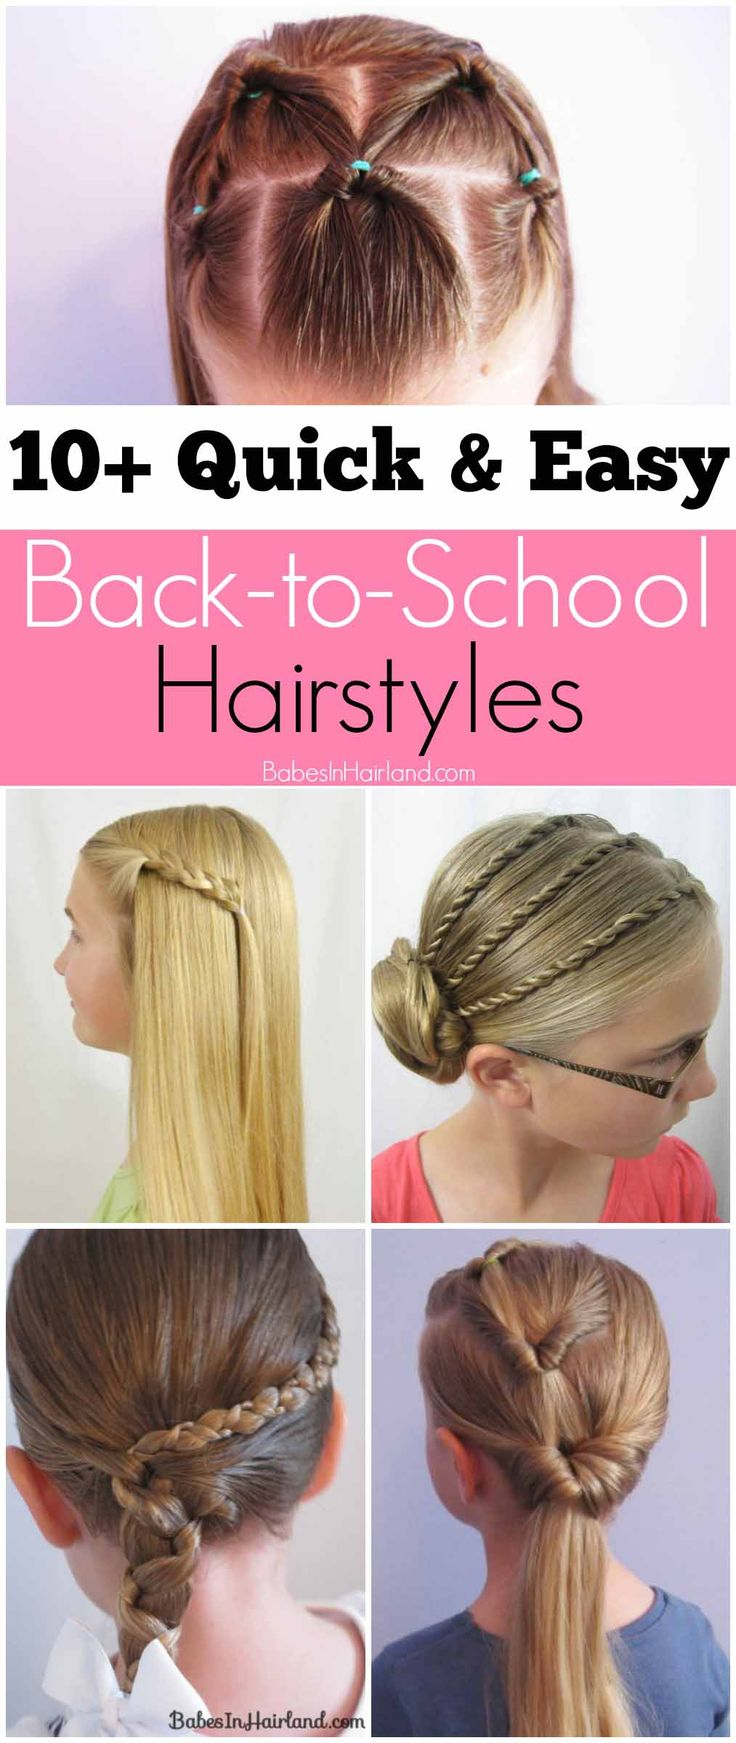 25 unique easy girl hairstyles ideas on pinterest girl 10 quick and easy back to school hairstyles babes in hairland urmus Images